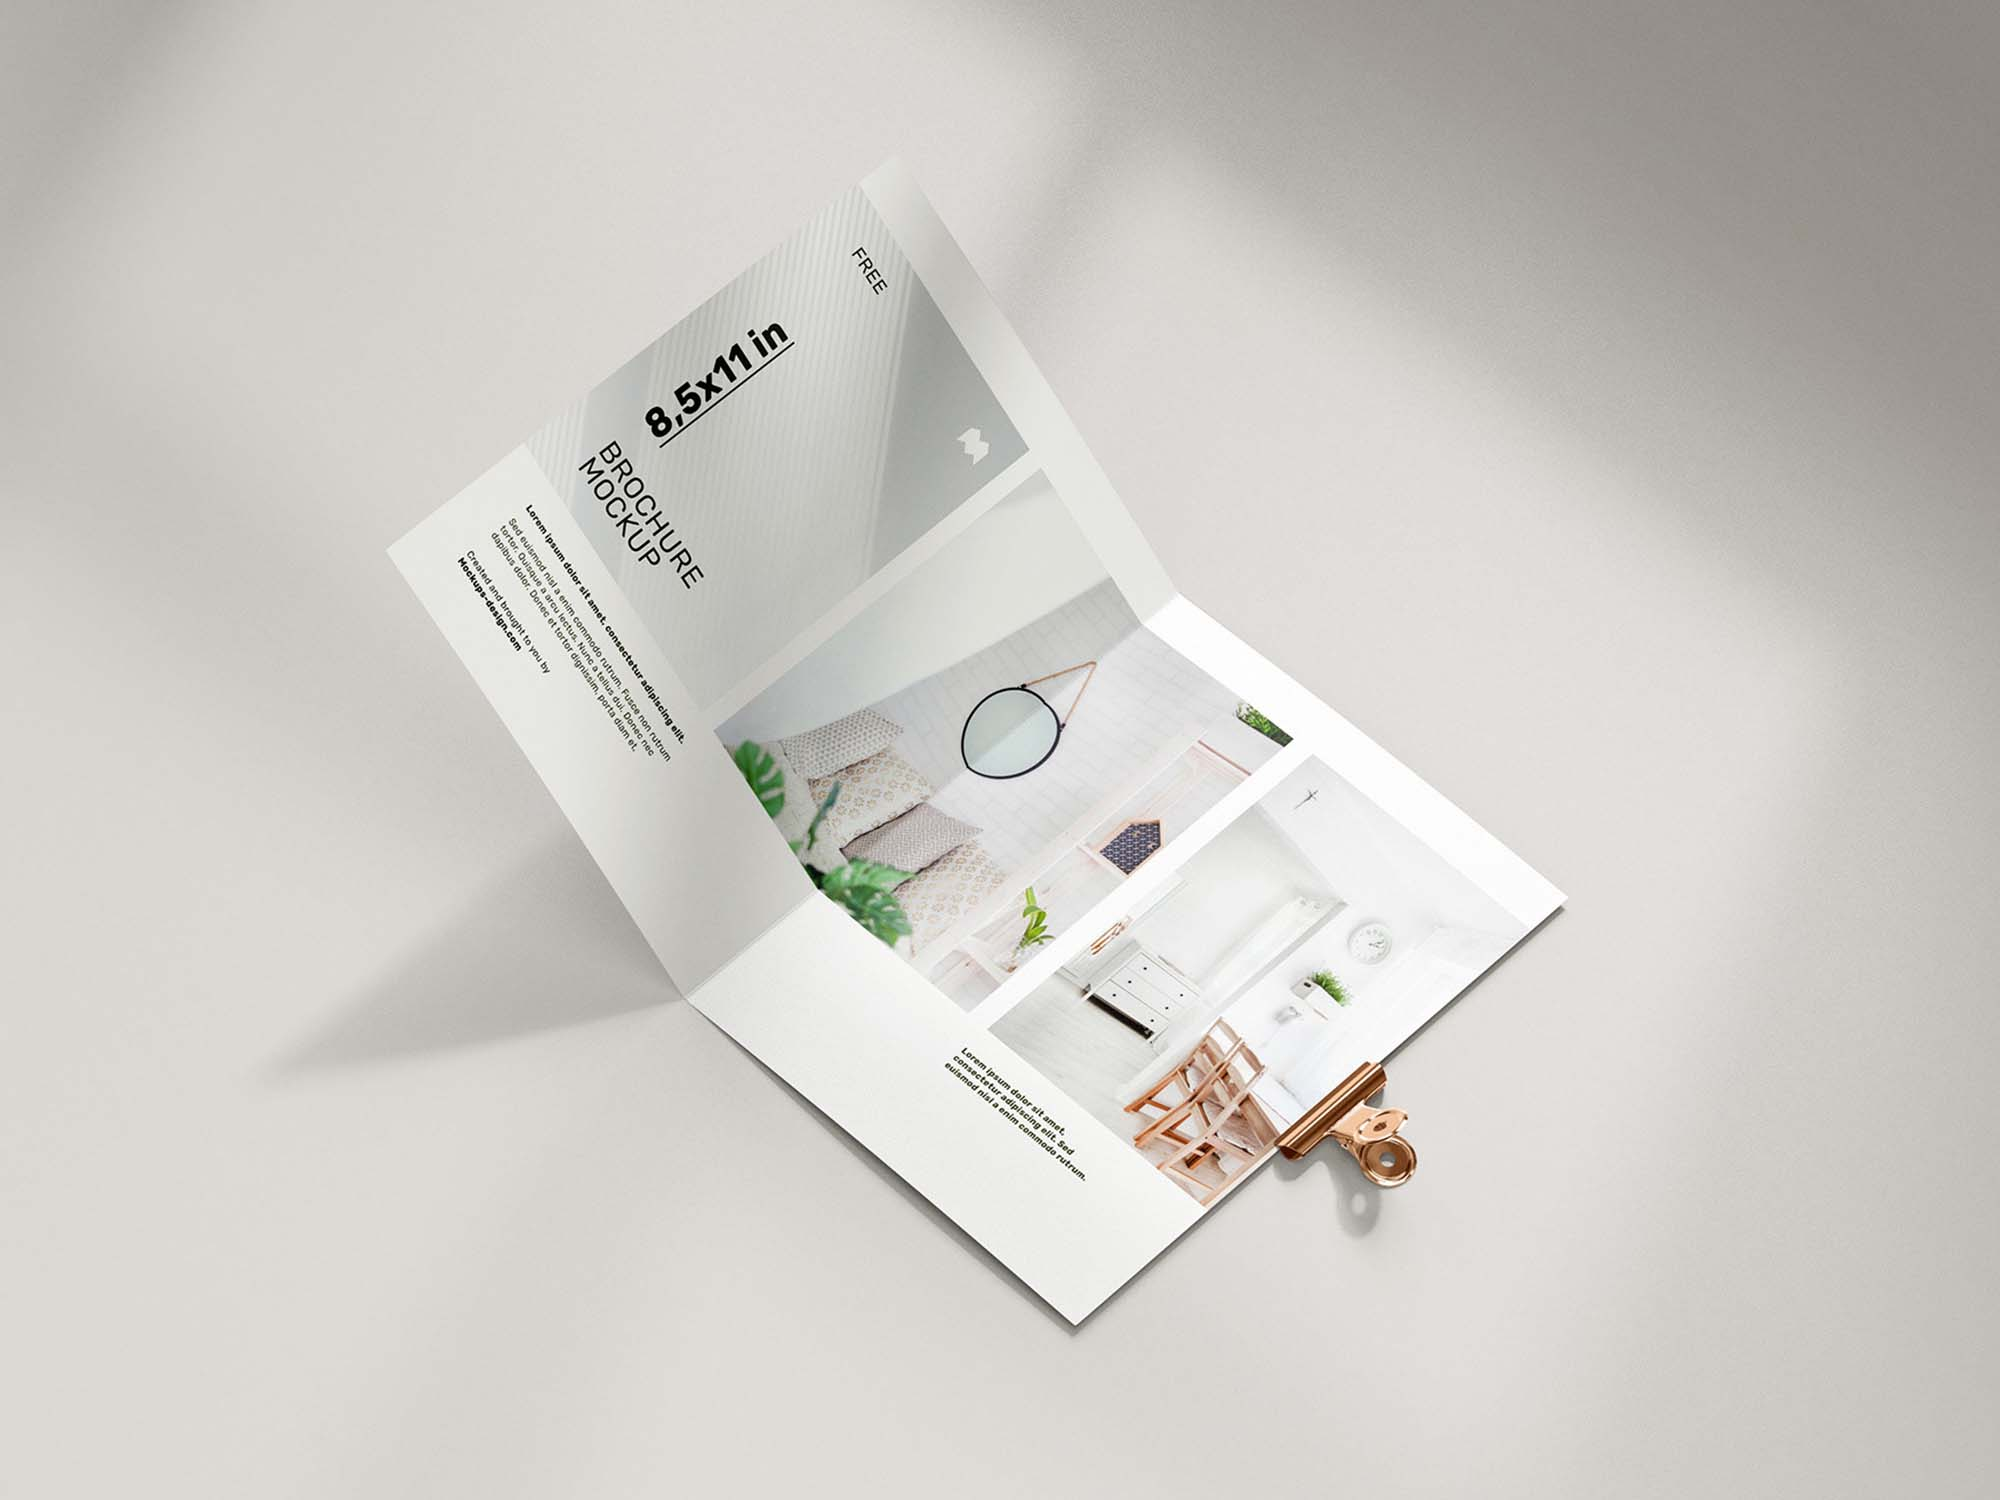 Folded 8.5 x 11 in Brochure Mockup 4